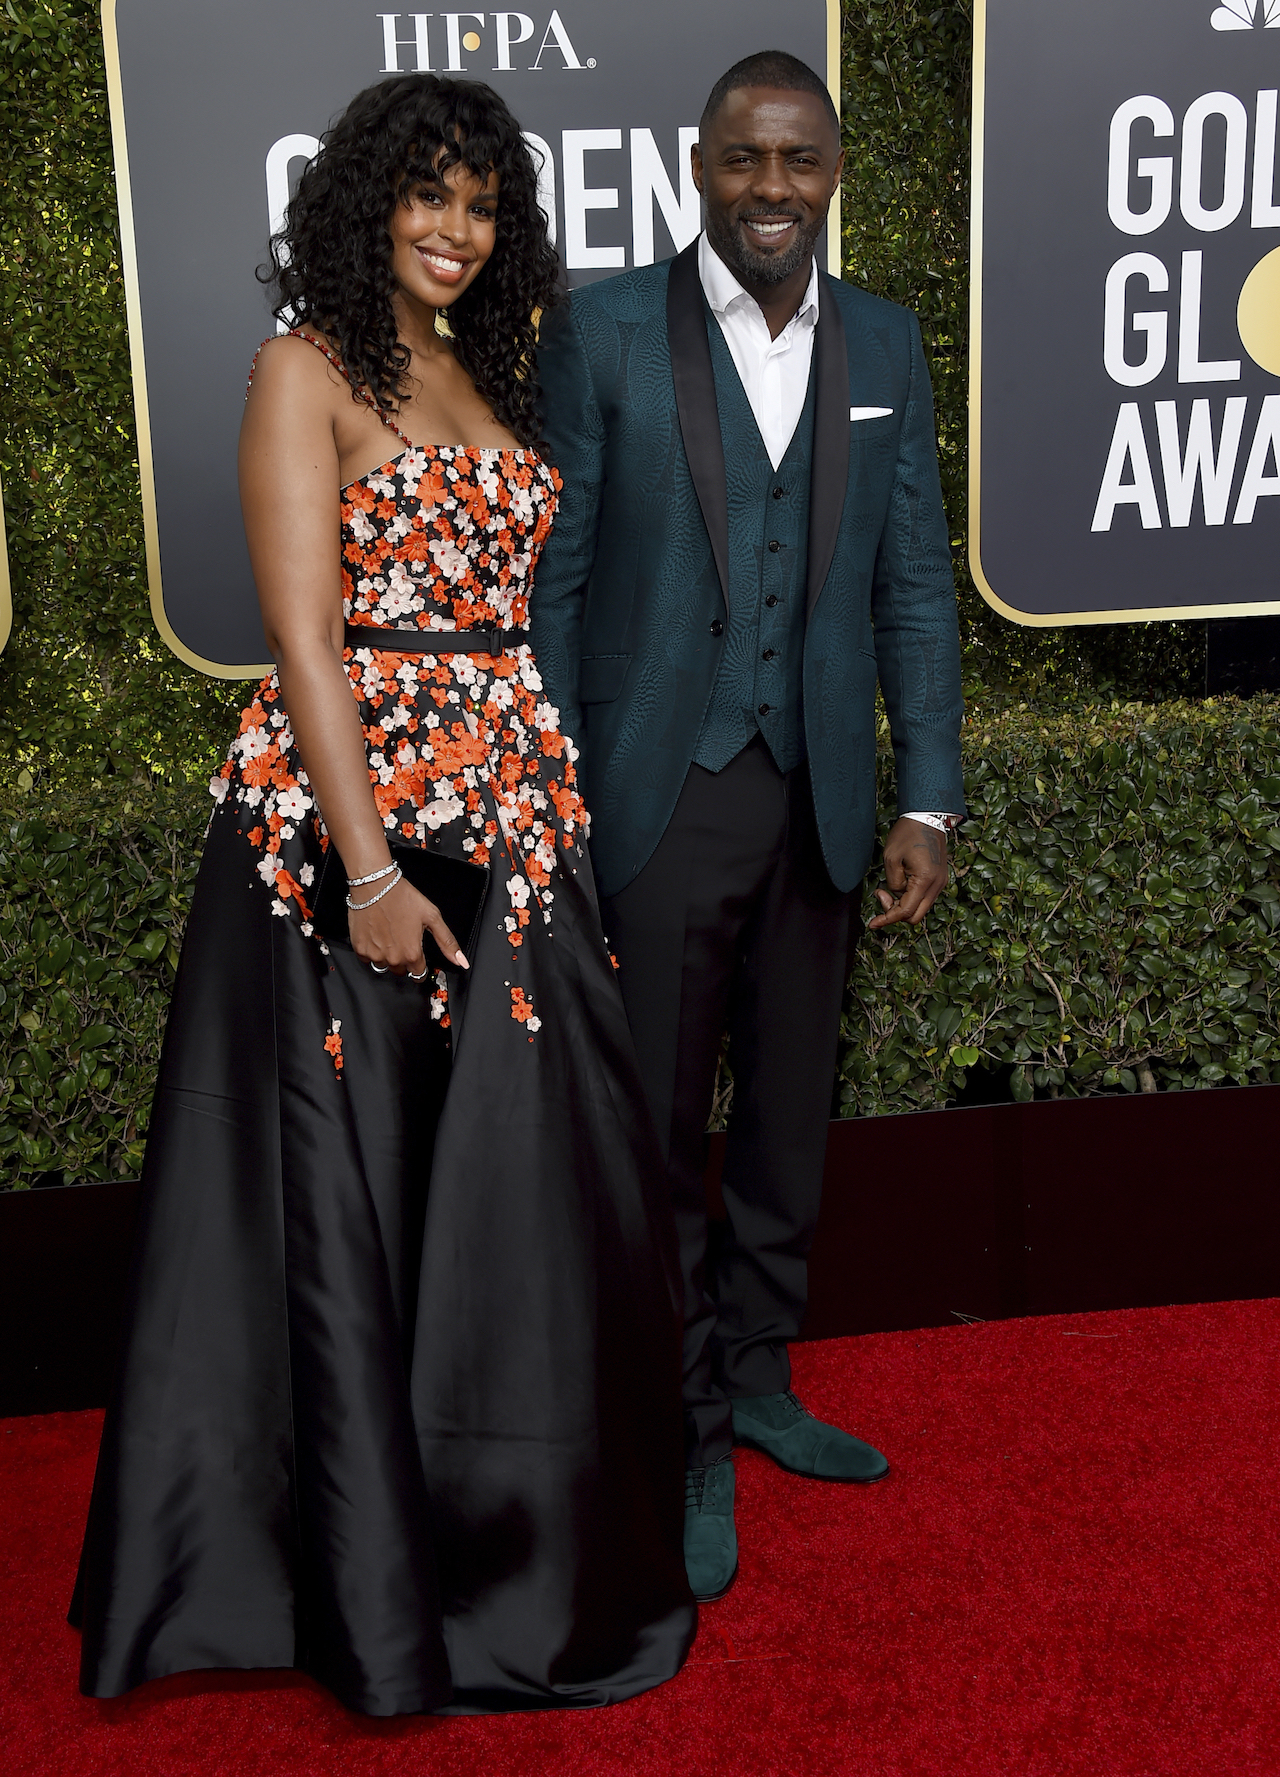 <div class='meta'><div class='origin-logo' data-origin='AP'></div><span class='caption-text' data-credit='Jordan Strauss/Invision/AP'>Idris Elba, right, and Sabrina Dhowre arrive at the 76th annual Golden Globe Awards at the Beverly Hilton Hotel on Sunday, Jan. 6, 2019, in Beverly Hills, Calif.</span></div>